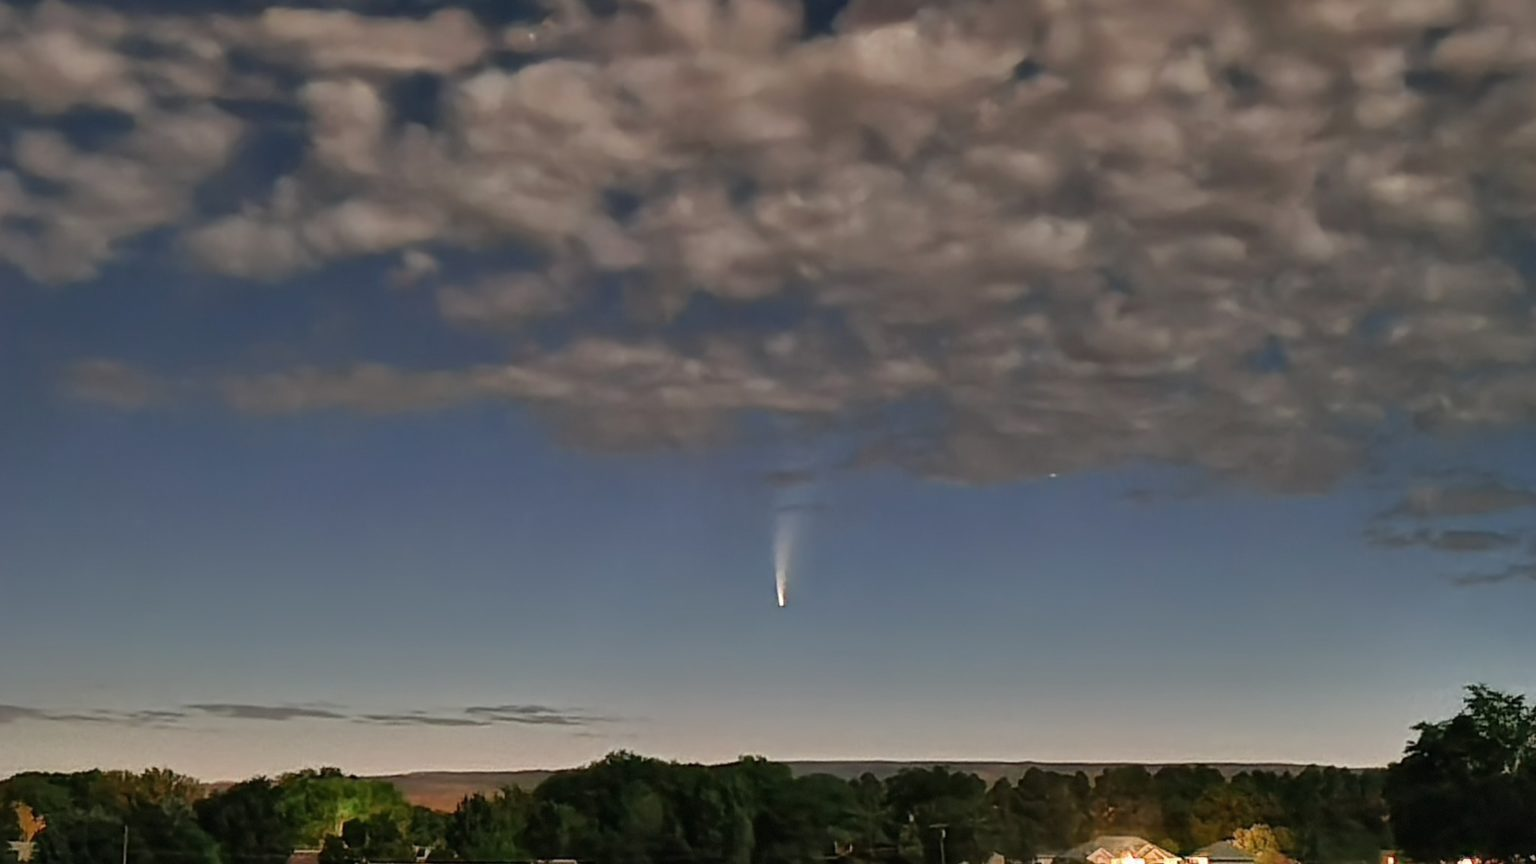 Comet whizzing by Earth for 1st time in 6,800 years is